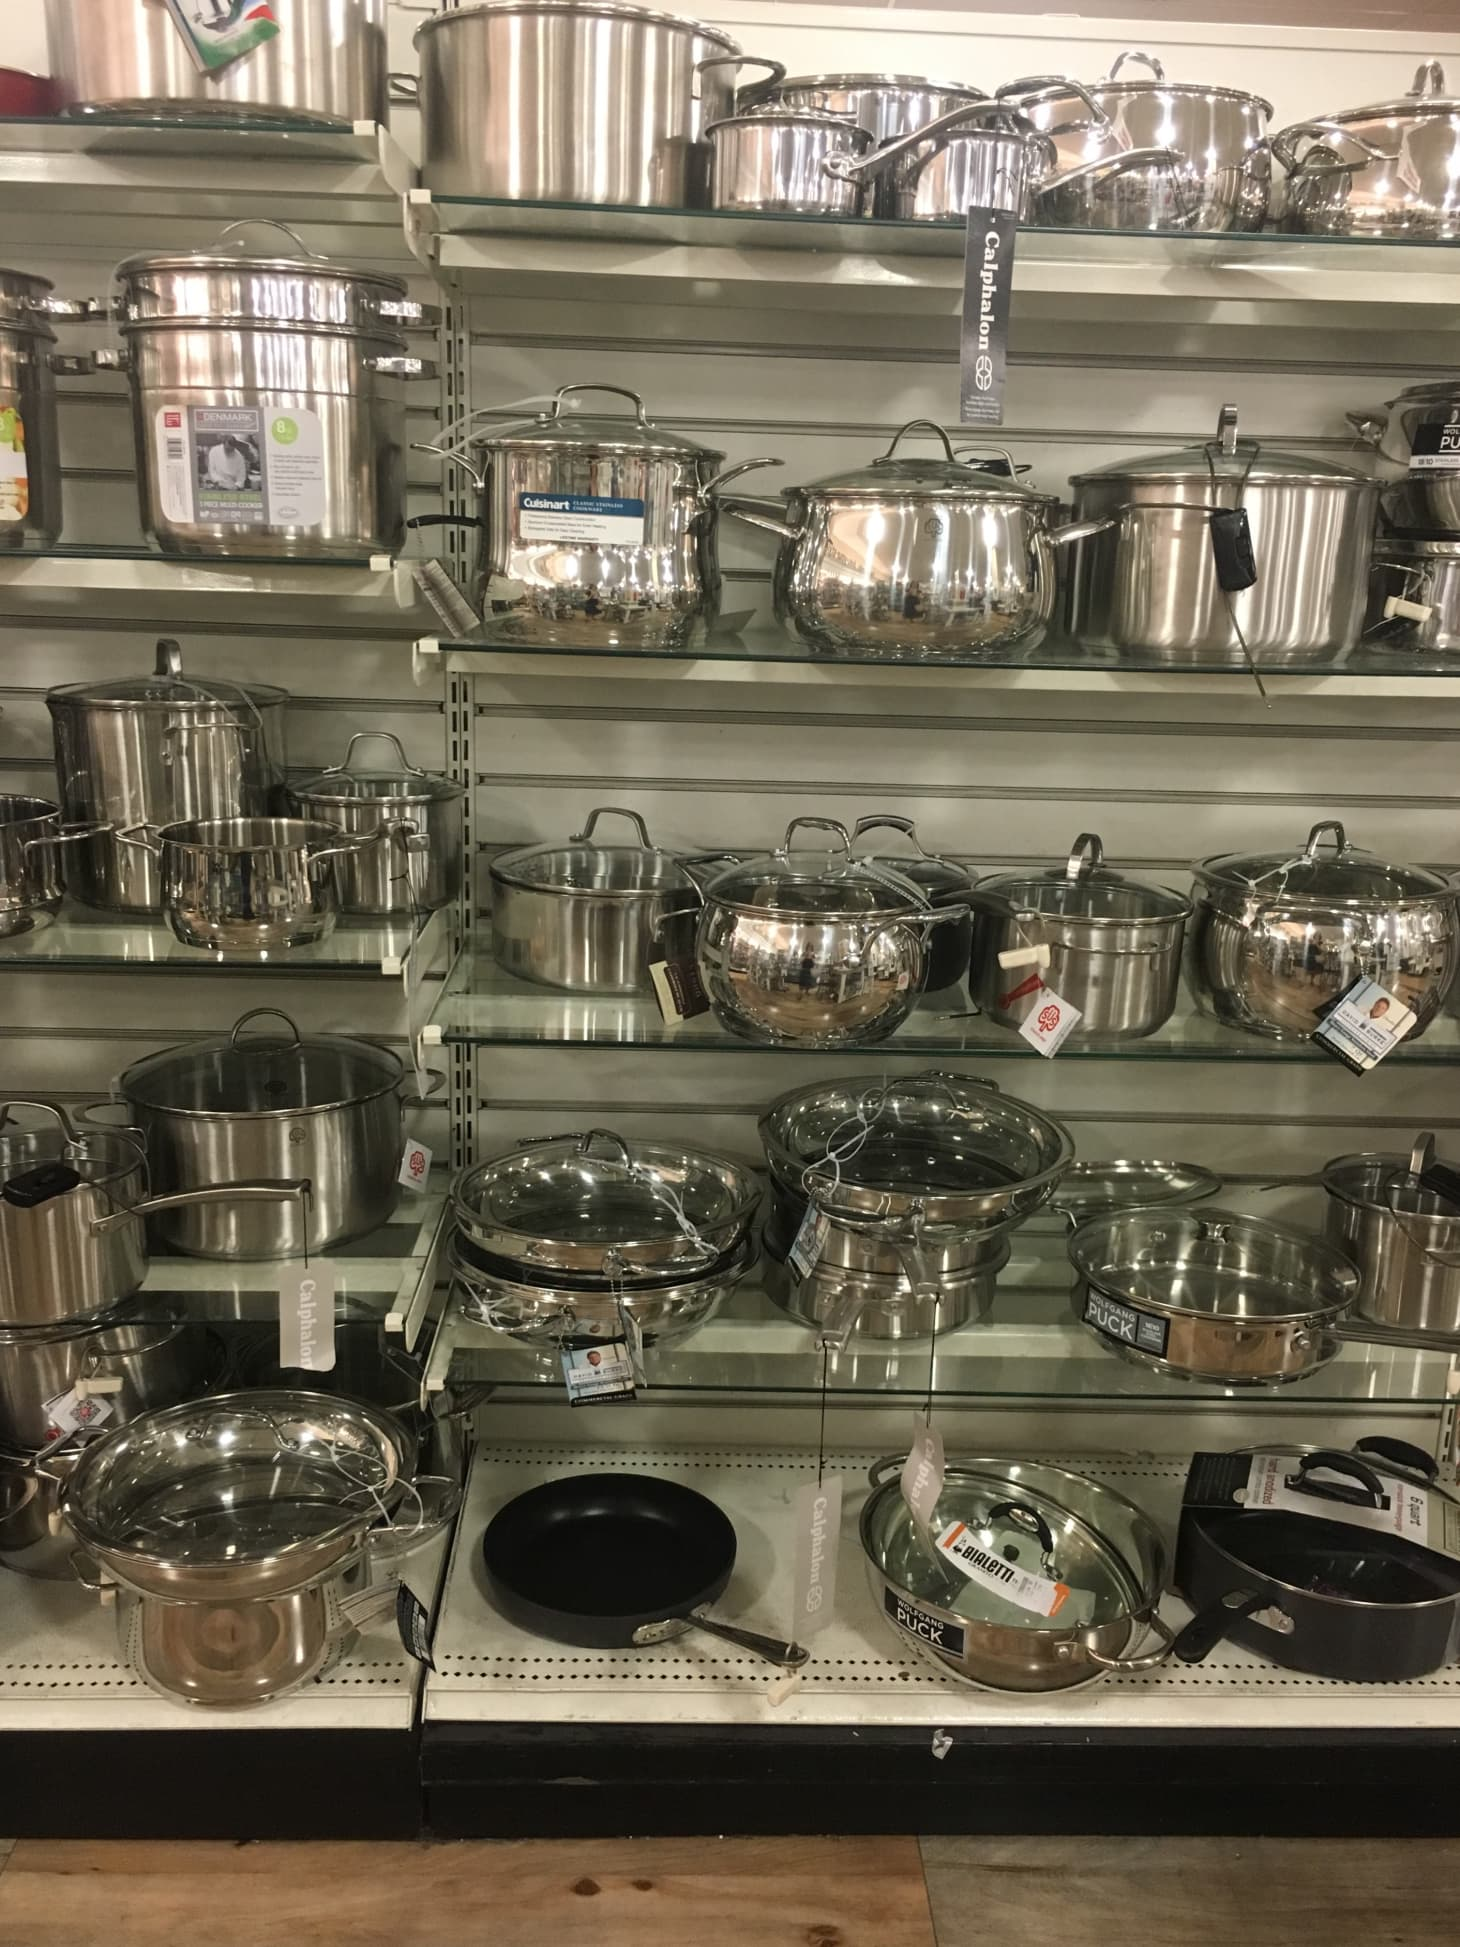 Shopping Tips TJ Maxx - Cookware Le Creuset All-Clad | Kitchn